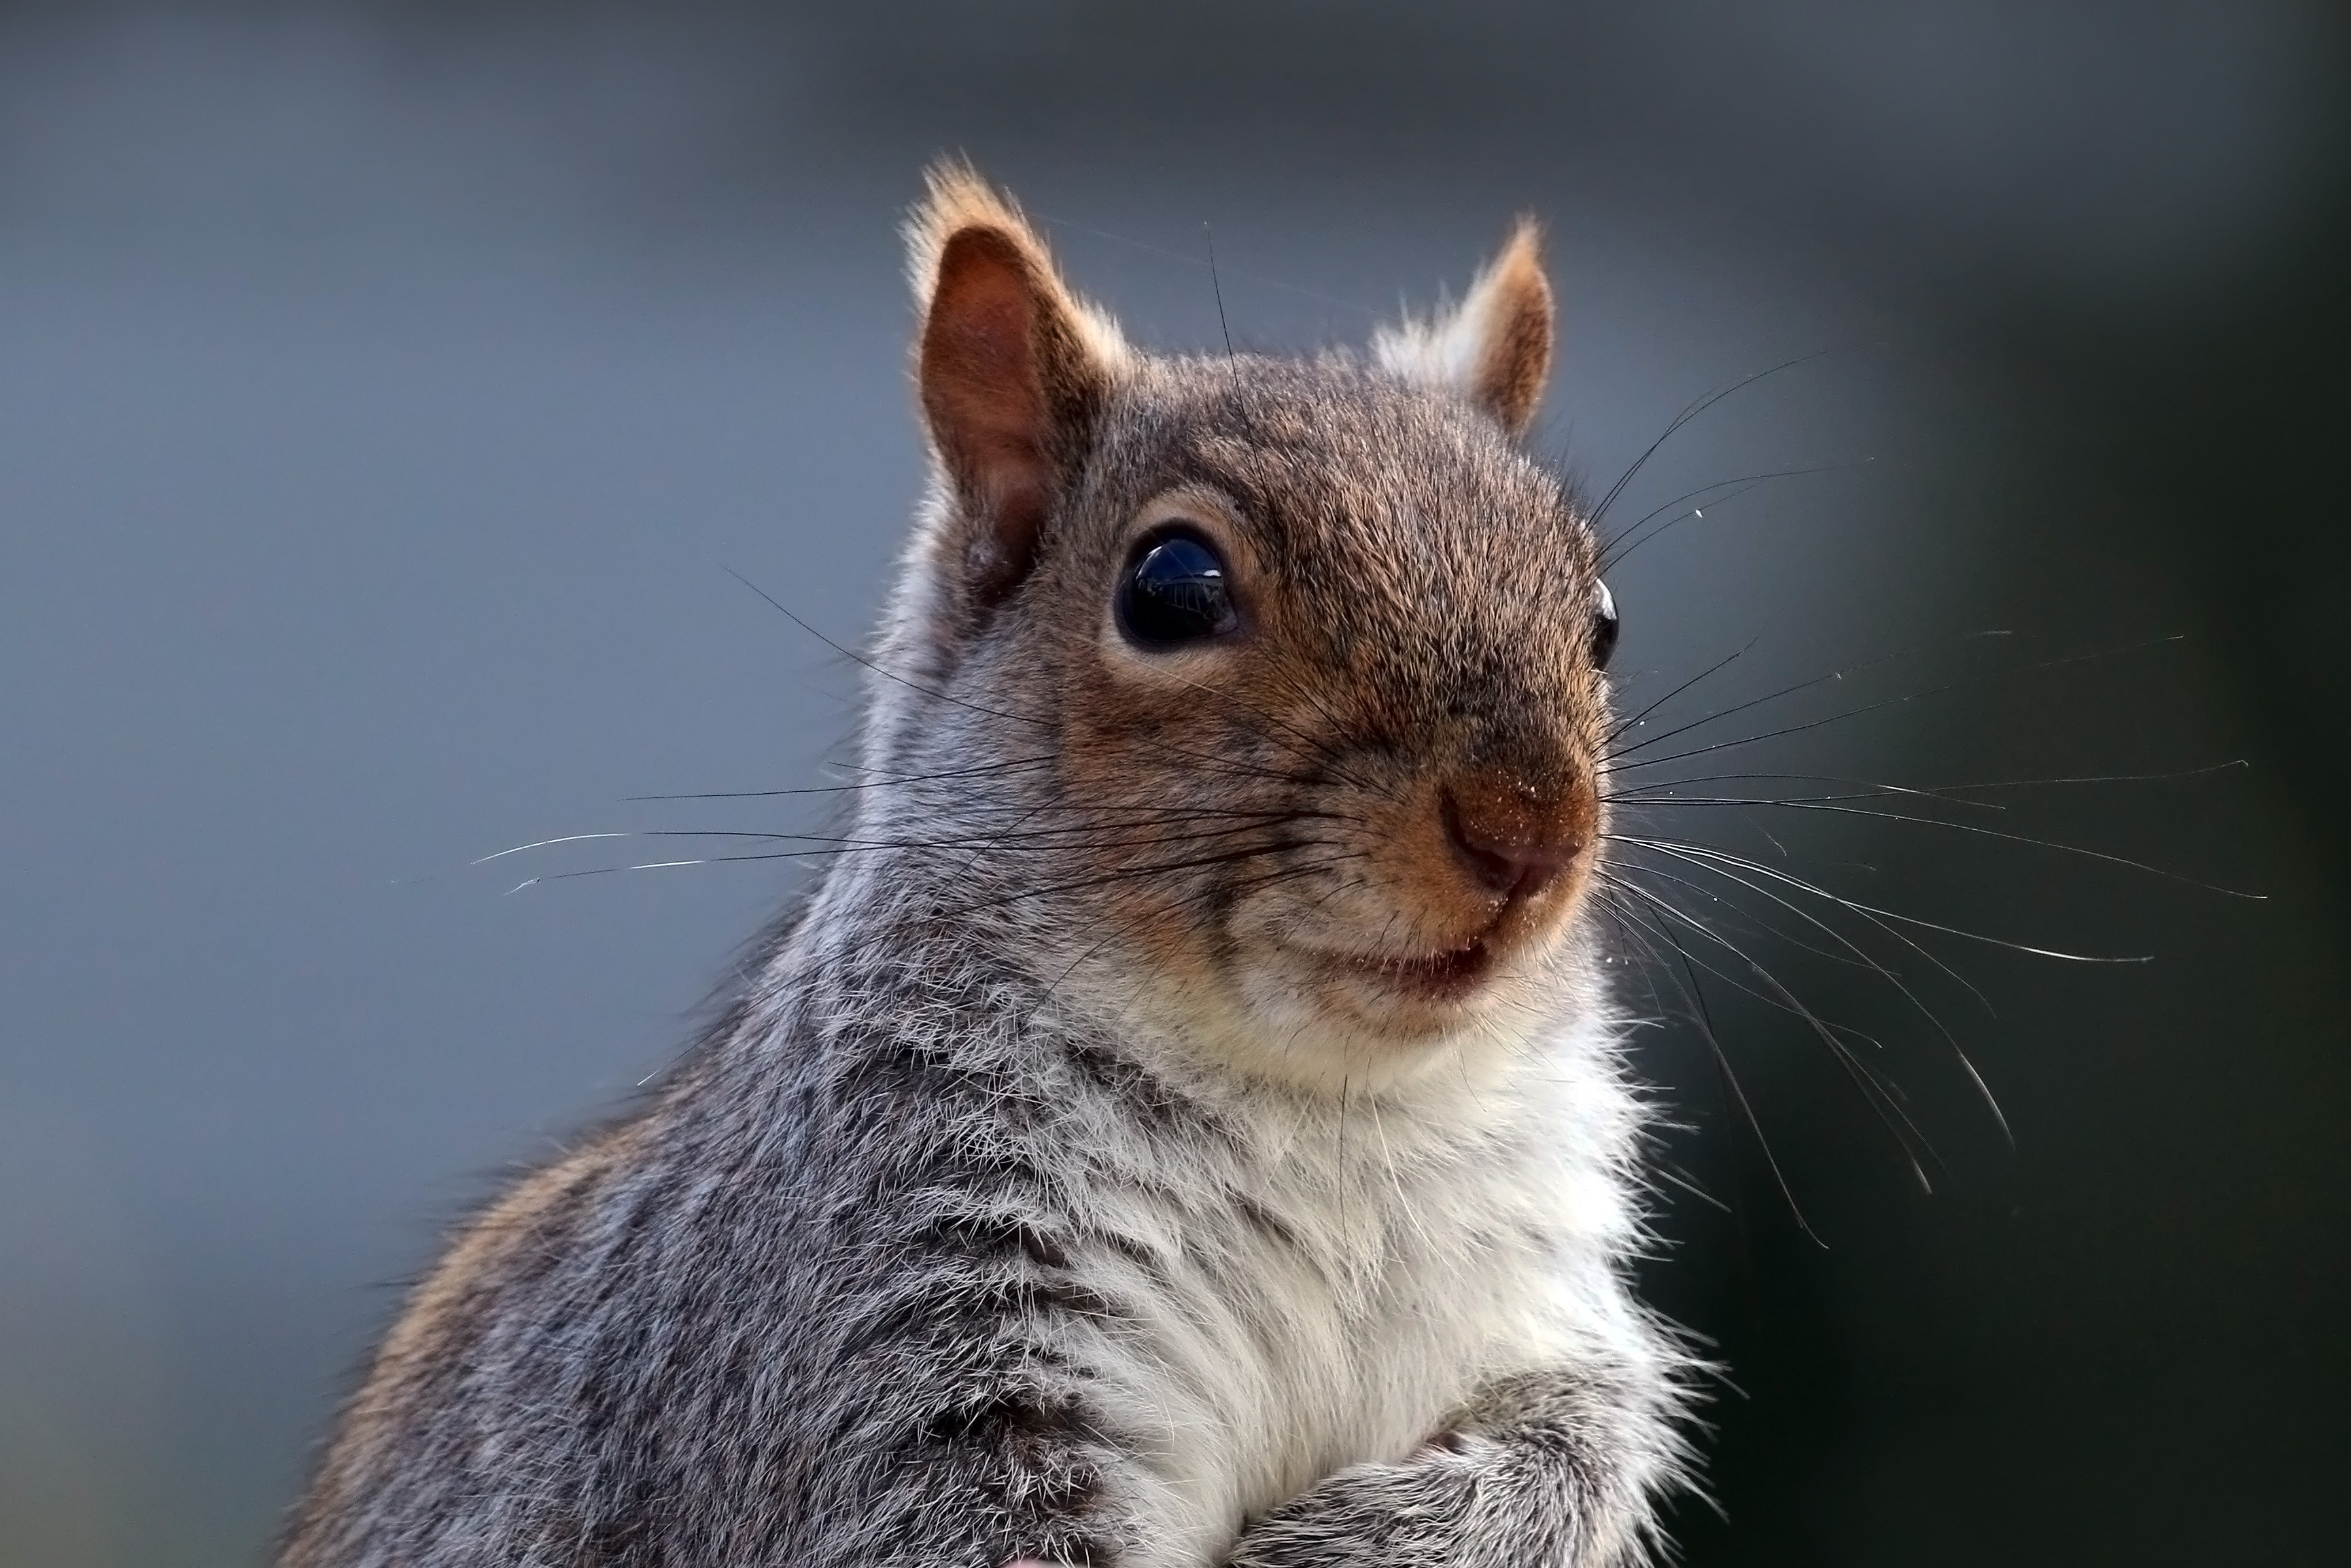 Volunteers Counted All the Squirrels in Central Park | Smart